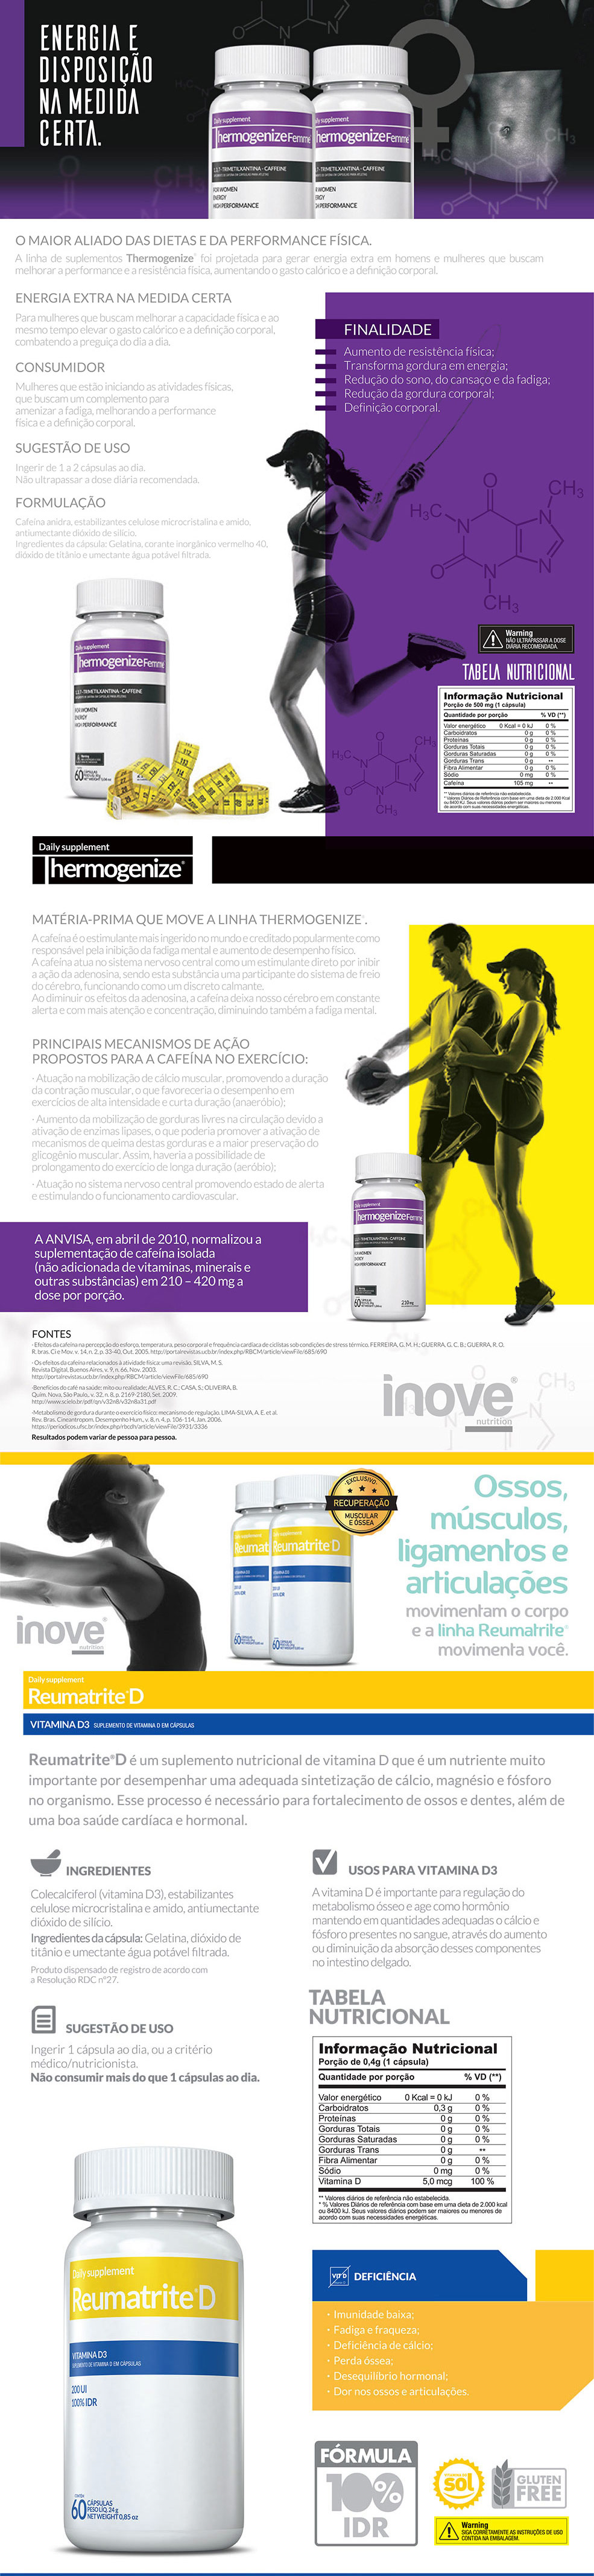 Thermogenize Femme® + Reumatrite® D + Squeeze Inove Nutrition